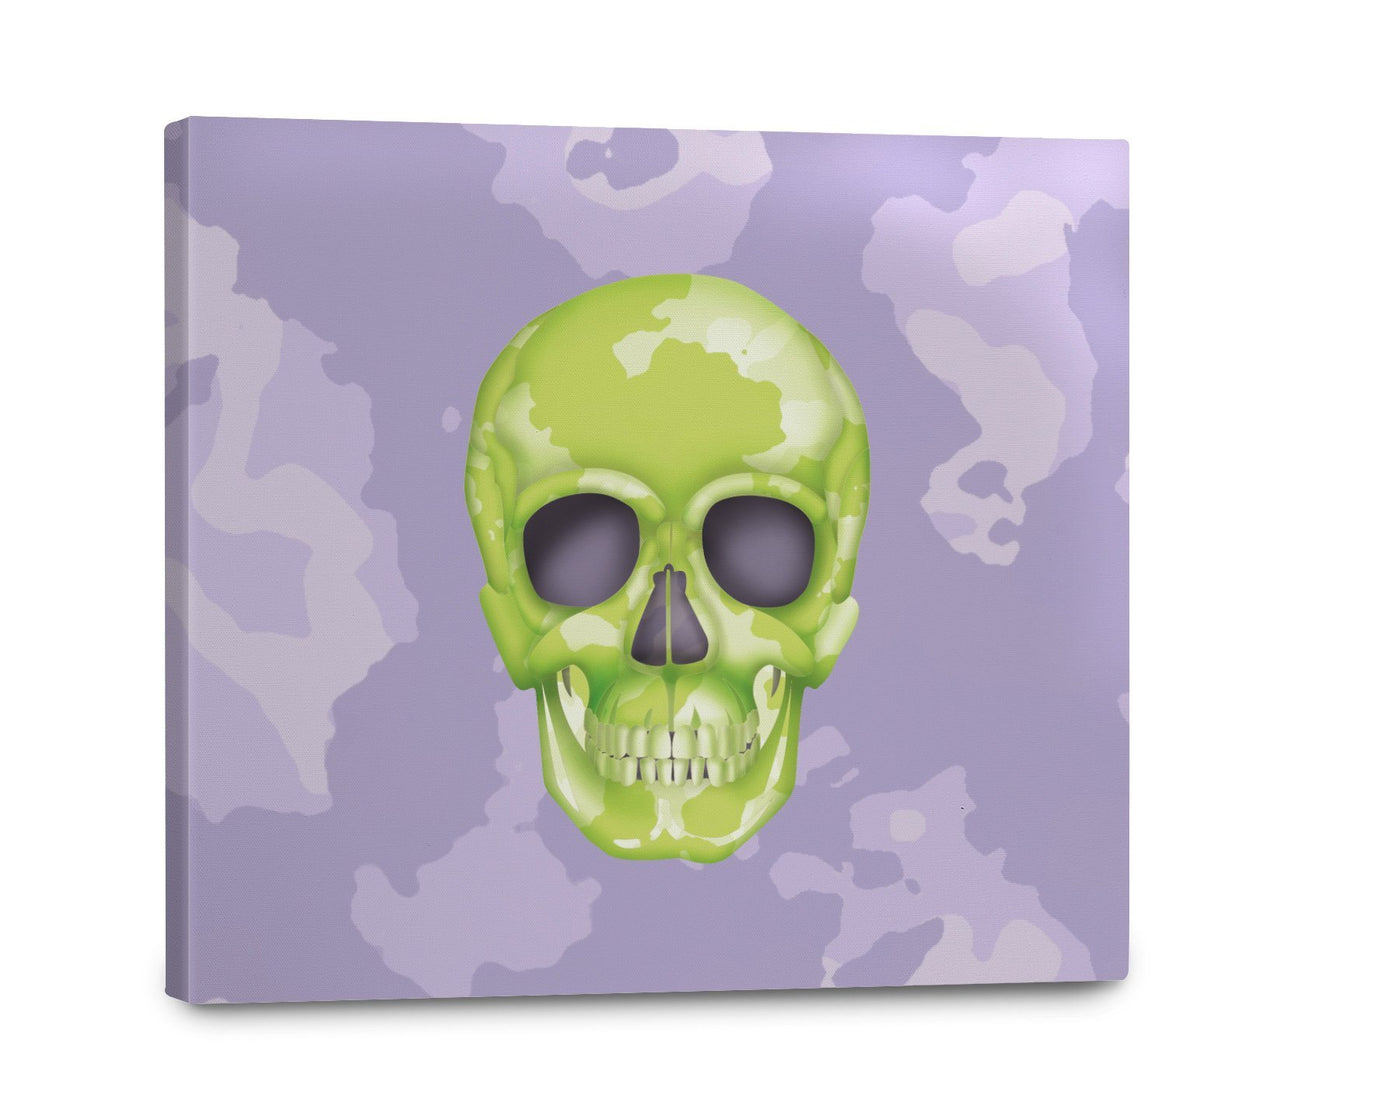 Canvas - Skull Camo Lime Green/Lavender Shop All MWW 16 x 16